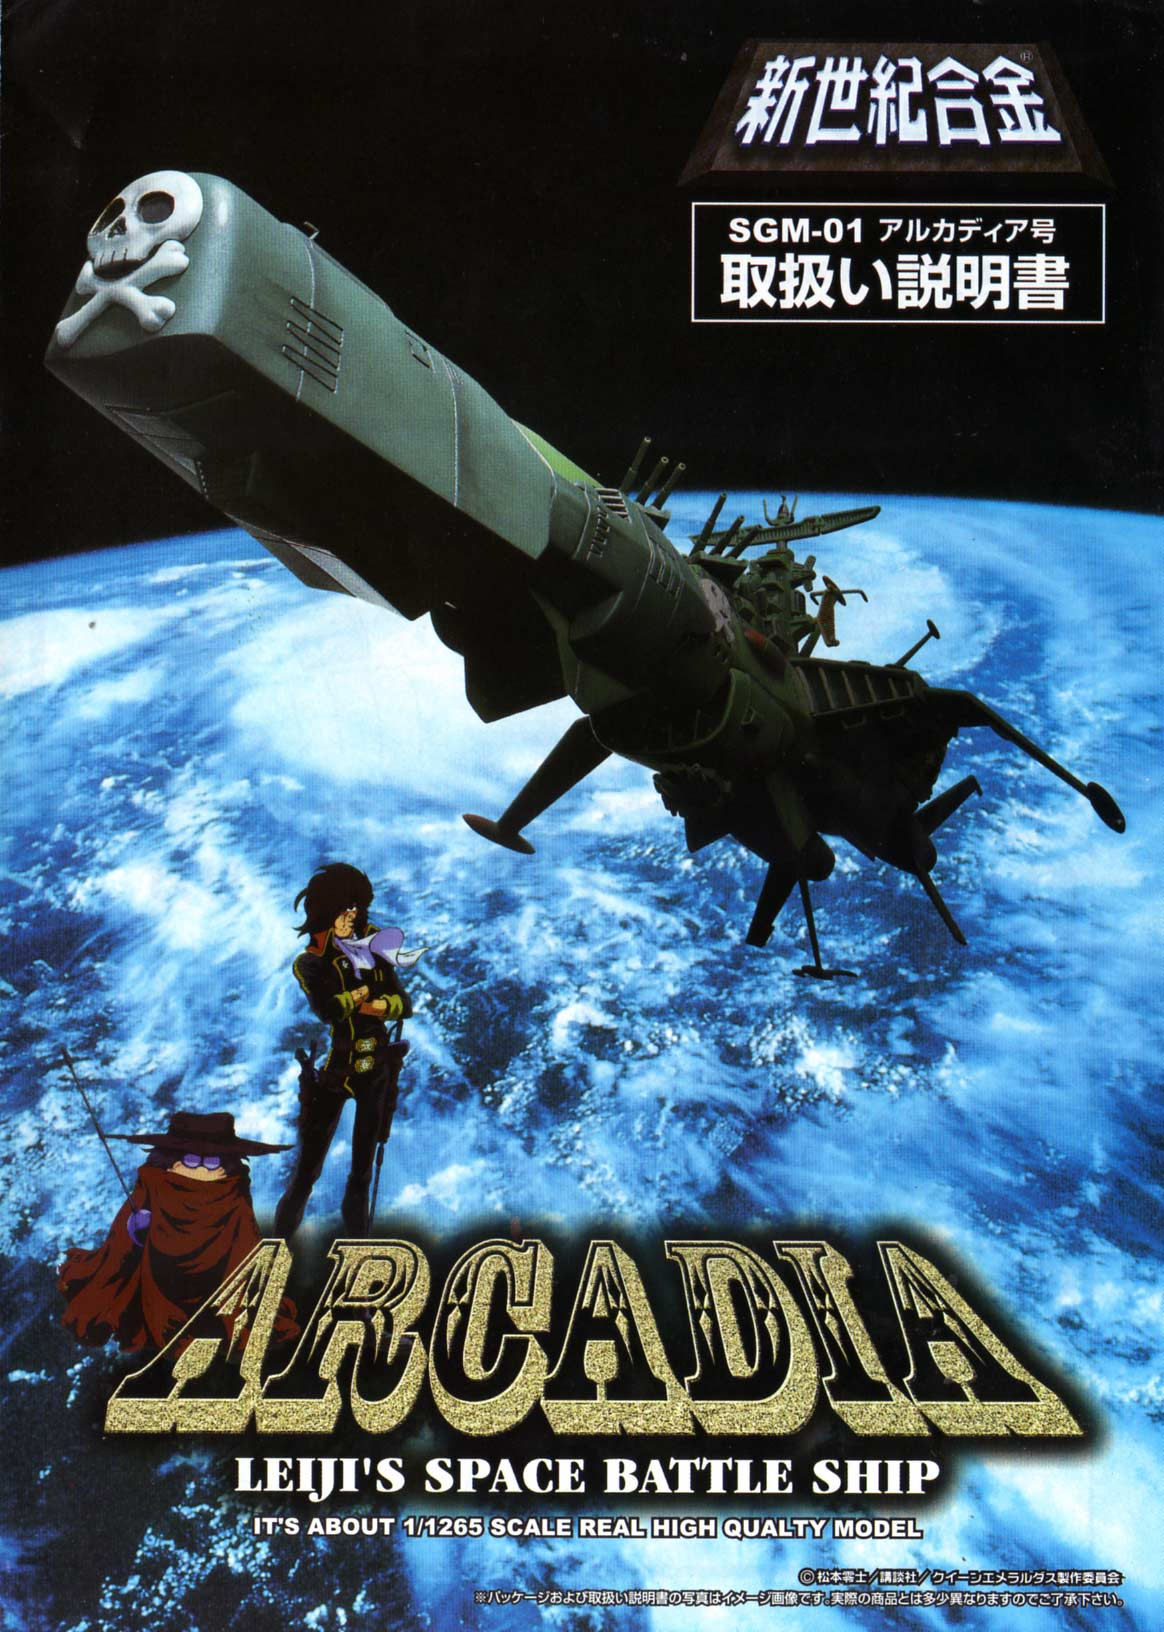 Notice de l&#039;Arcadia d&#039;Aoshima couverture